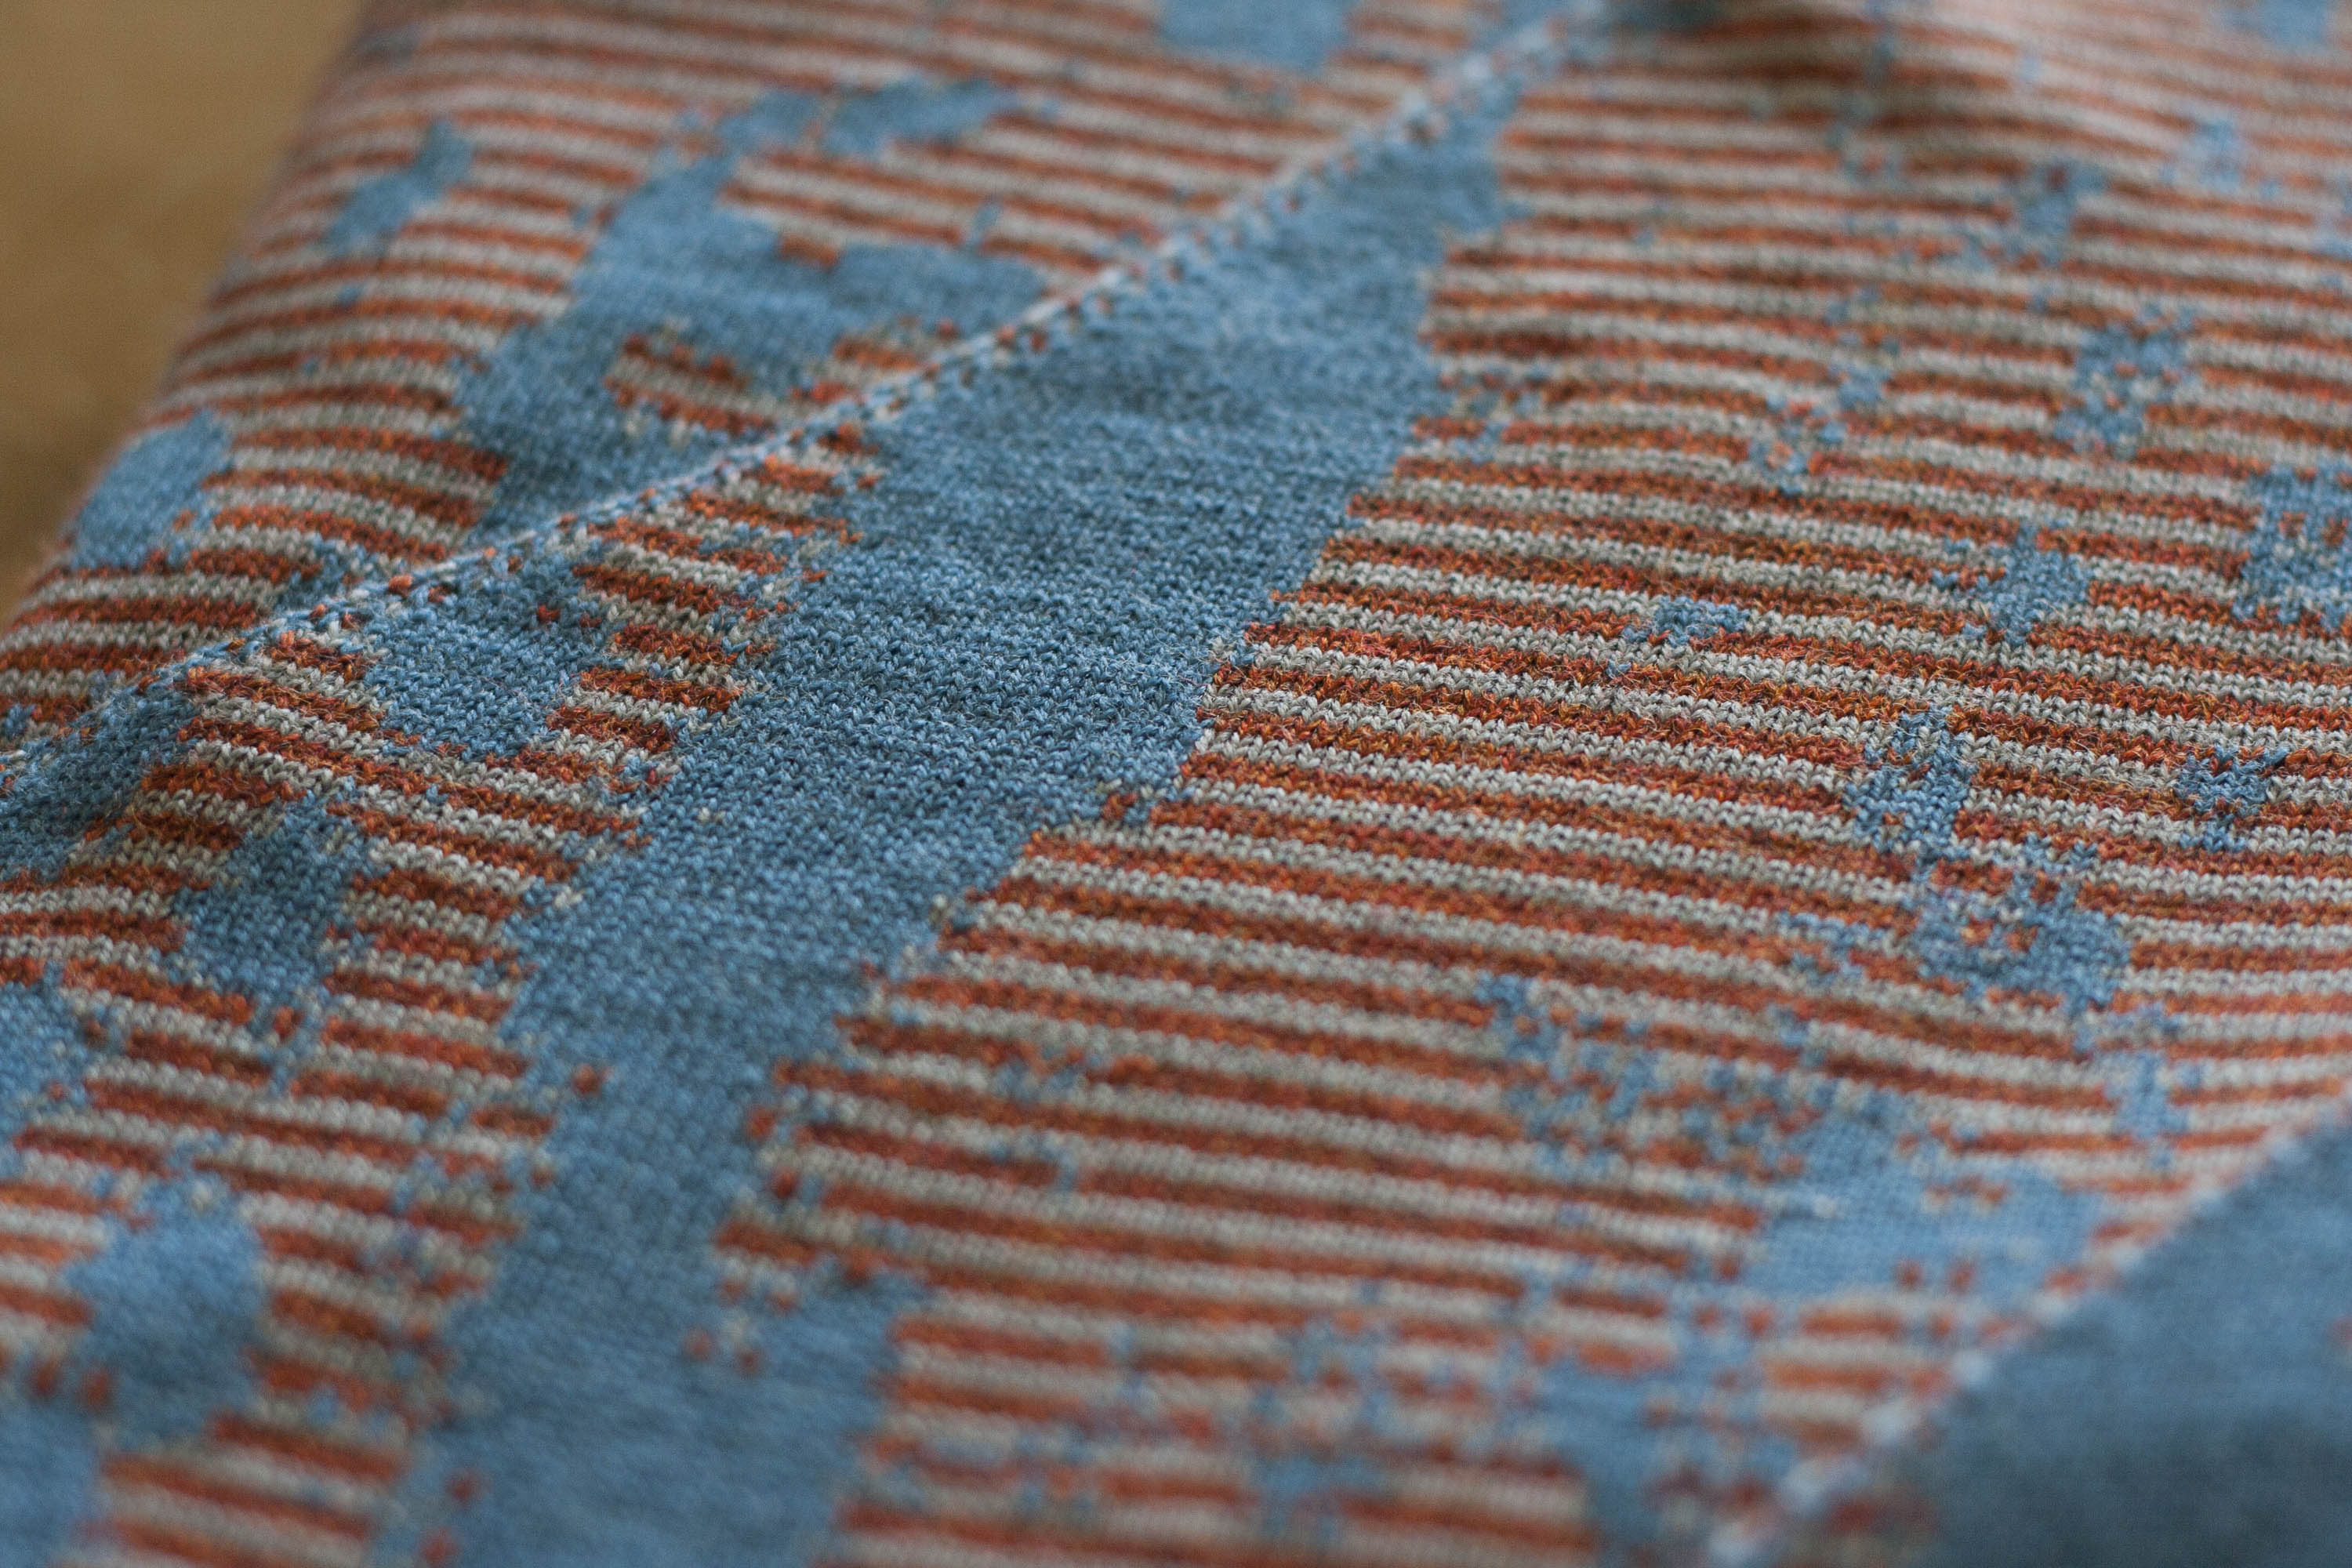 Detail of striped Marlet textile in blues and rusts. Mottled abstract textile design